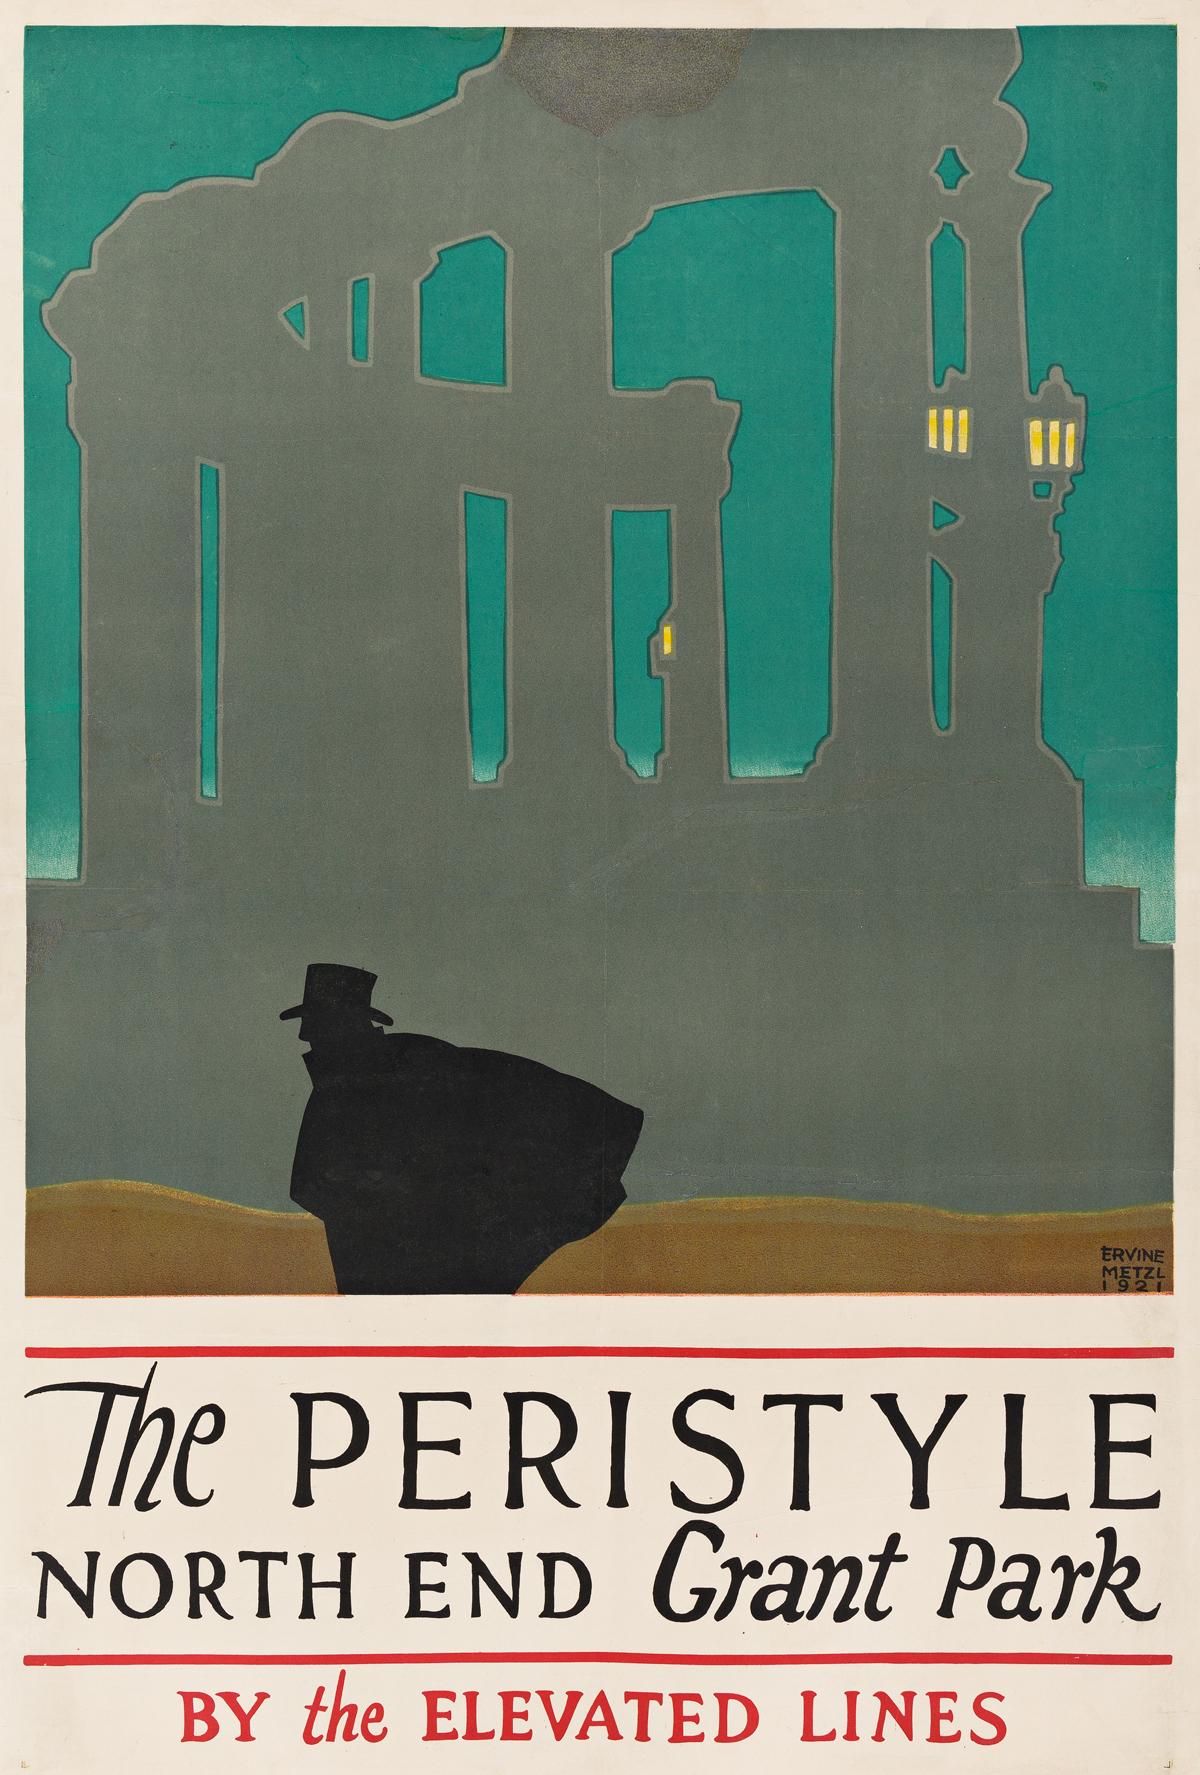 Ervine Metzl (1899-1963).  THE PERISTYLE / NORTH END GRANT PARK / BY THE ELEVATED LINES. 1921.